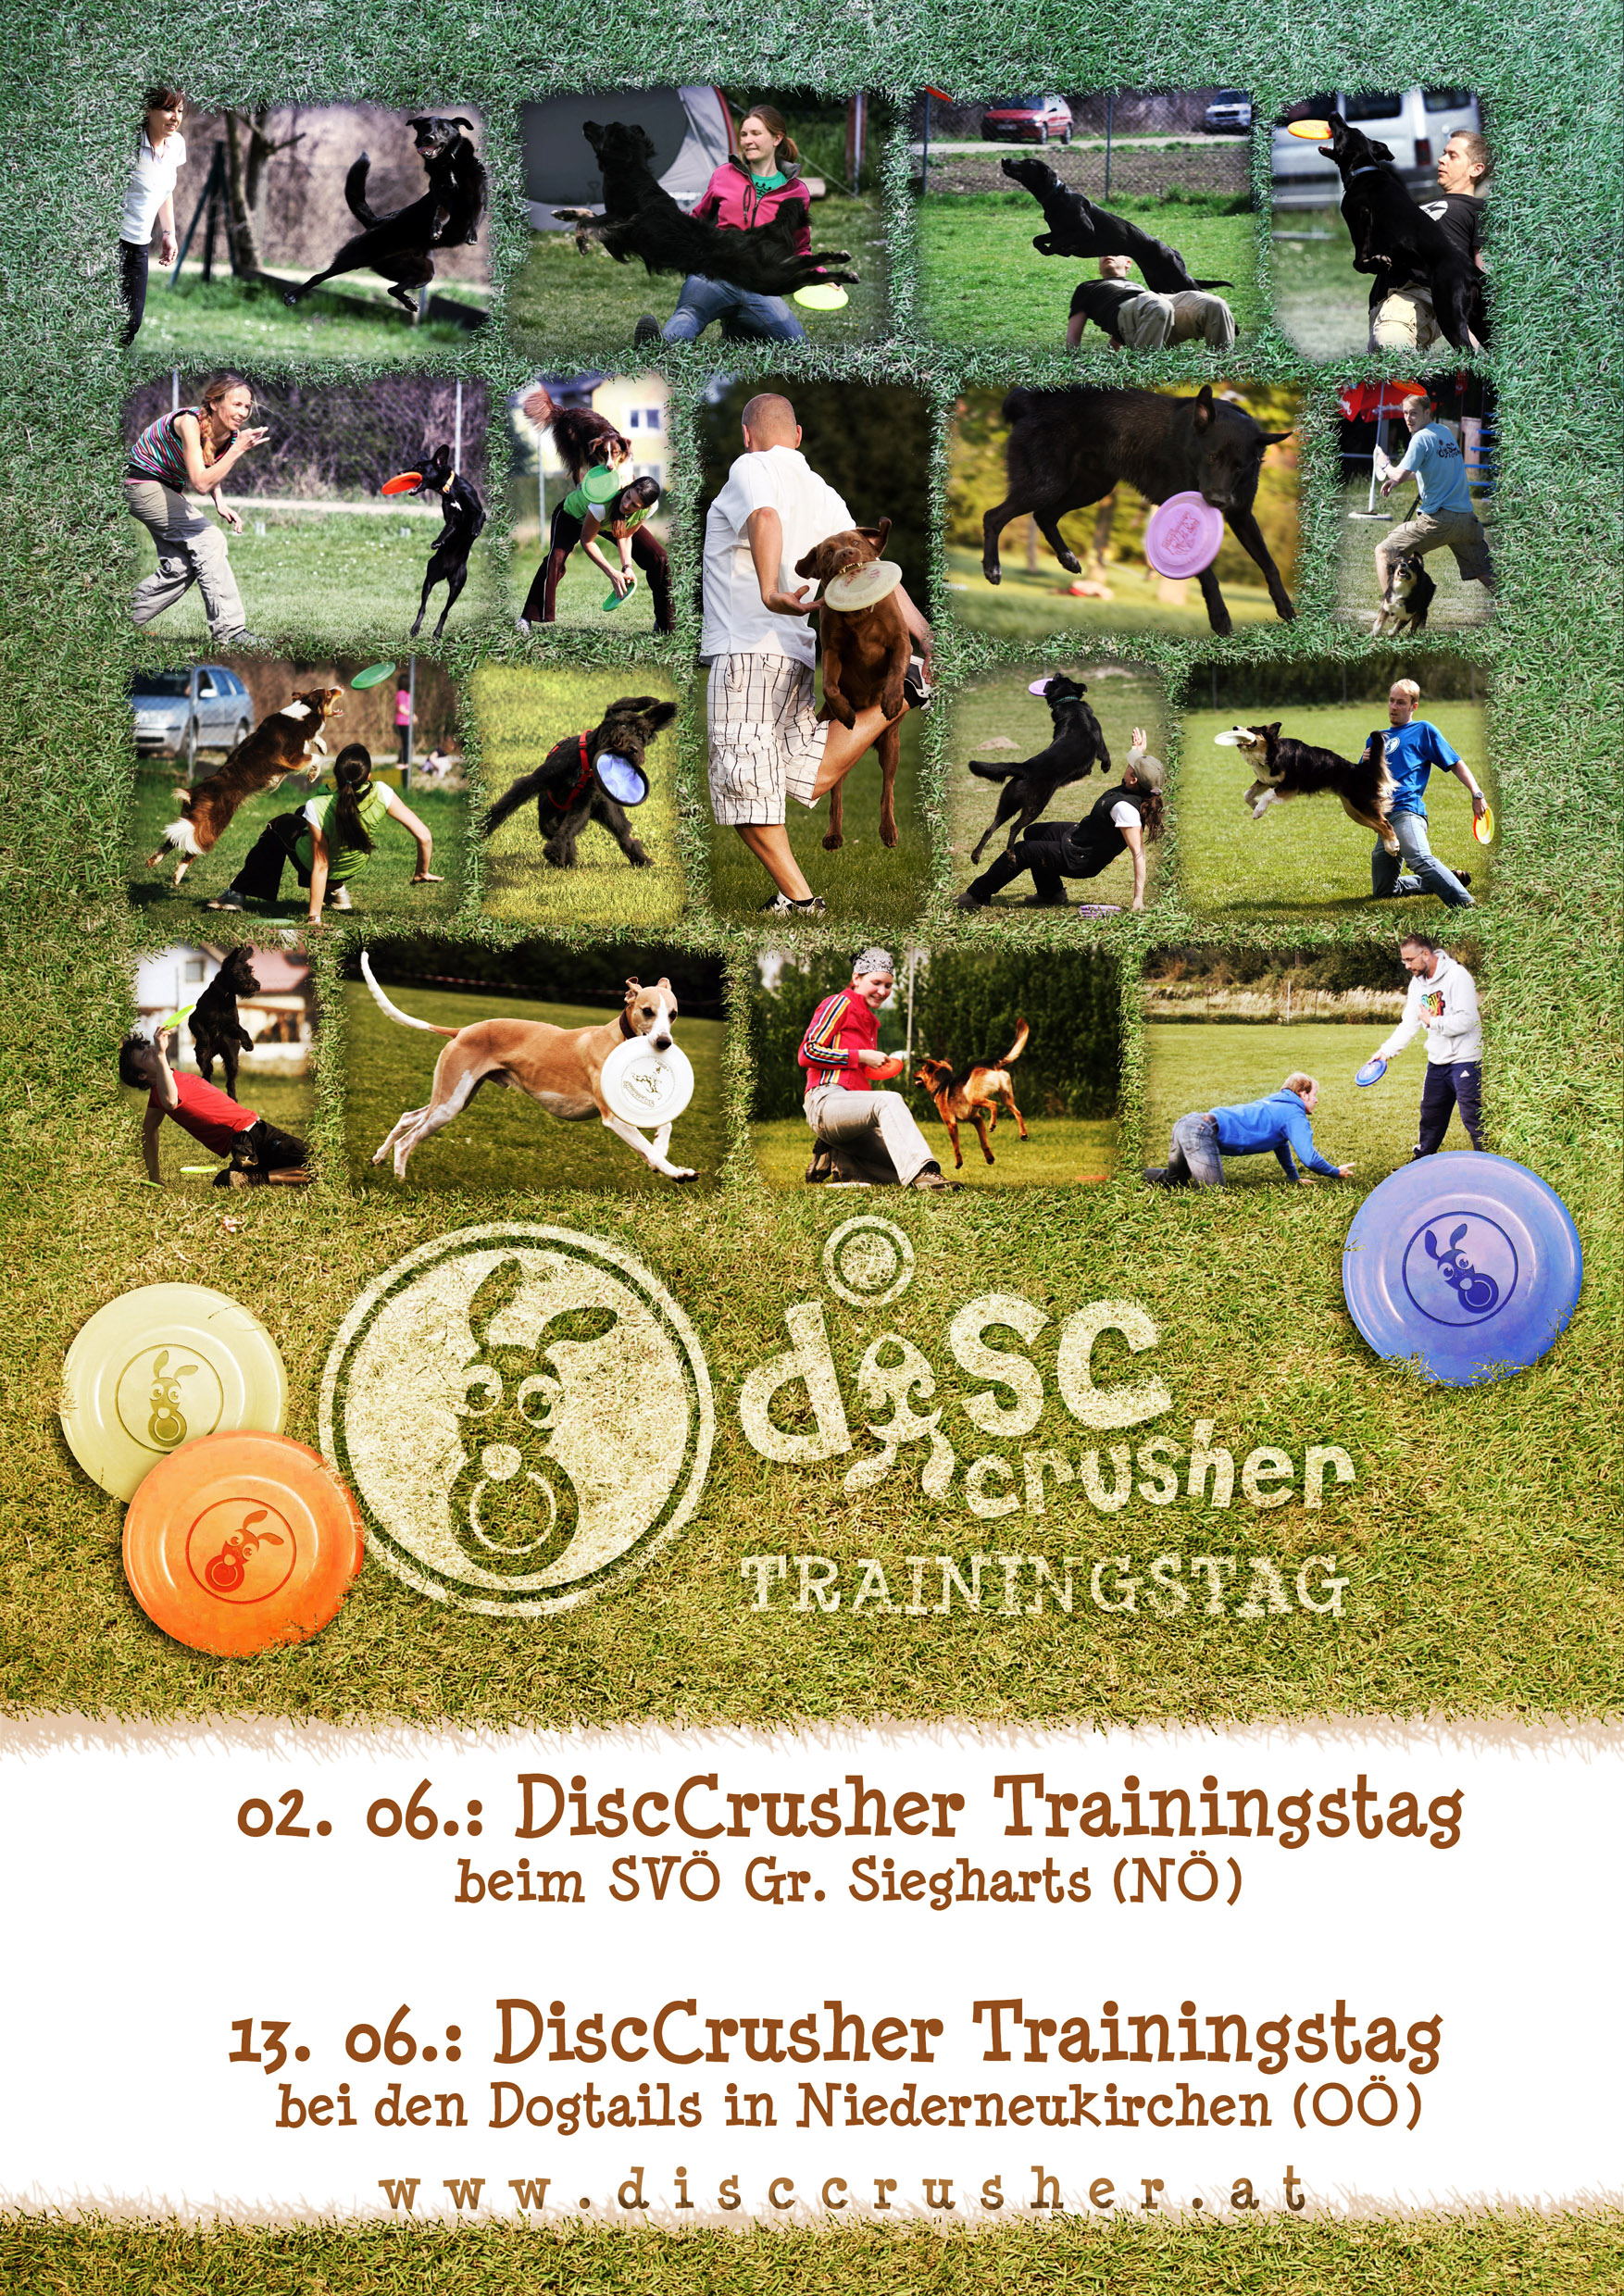 Disccrusher Trainingstage 2011